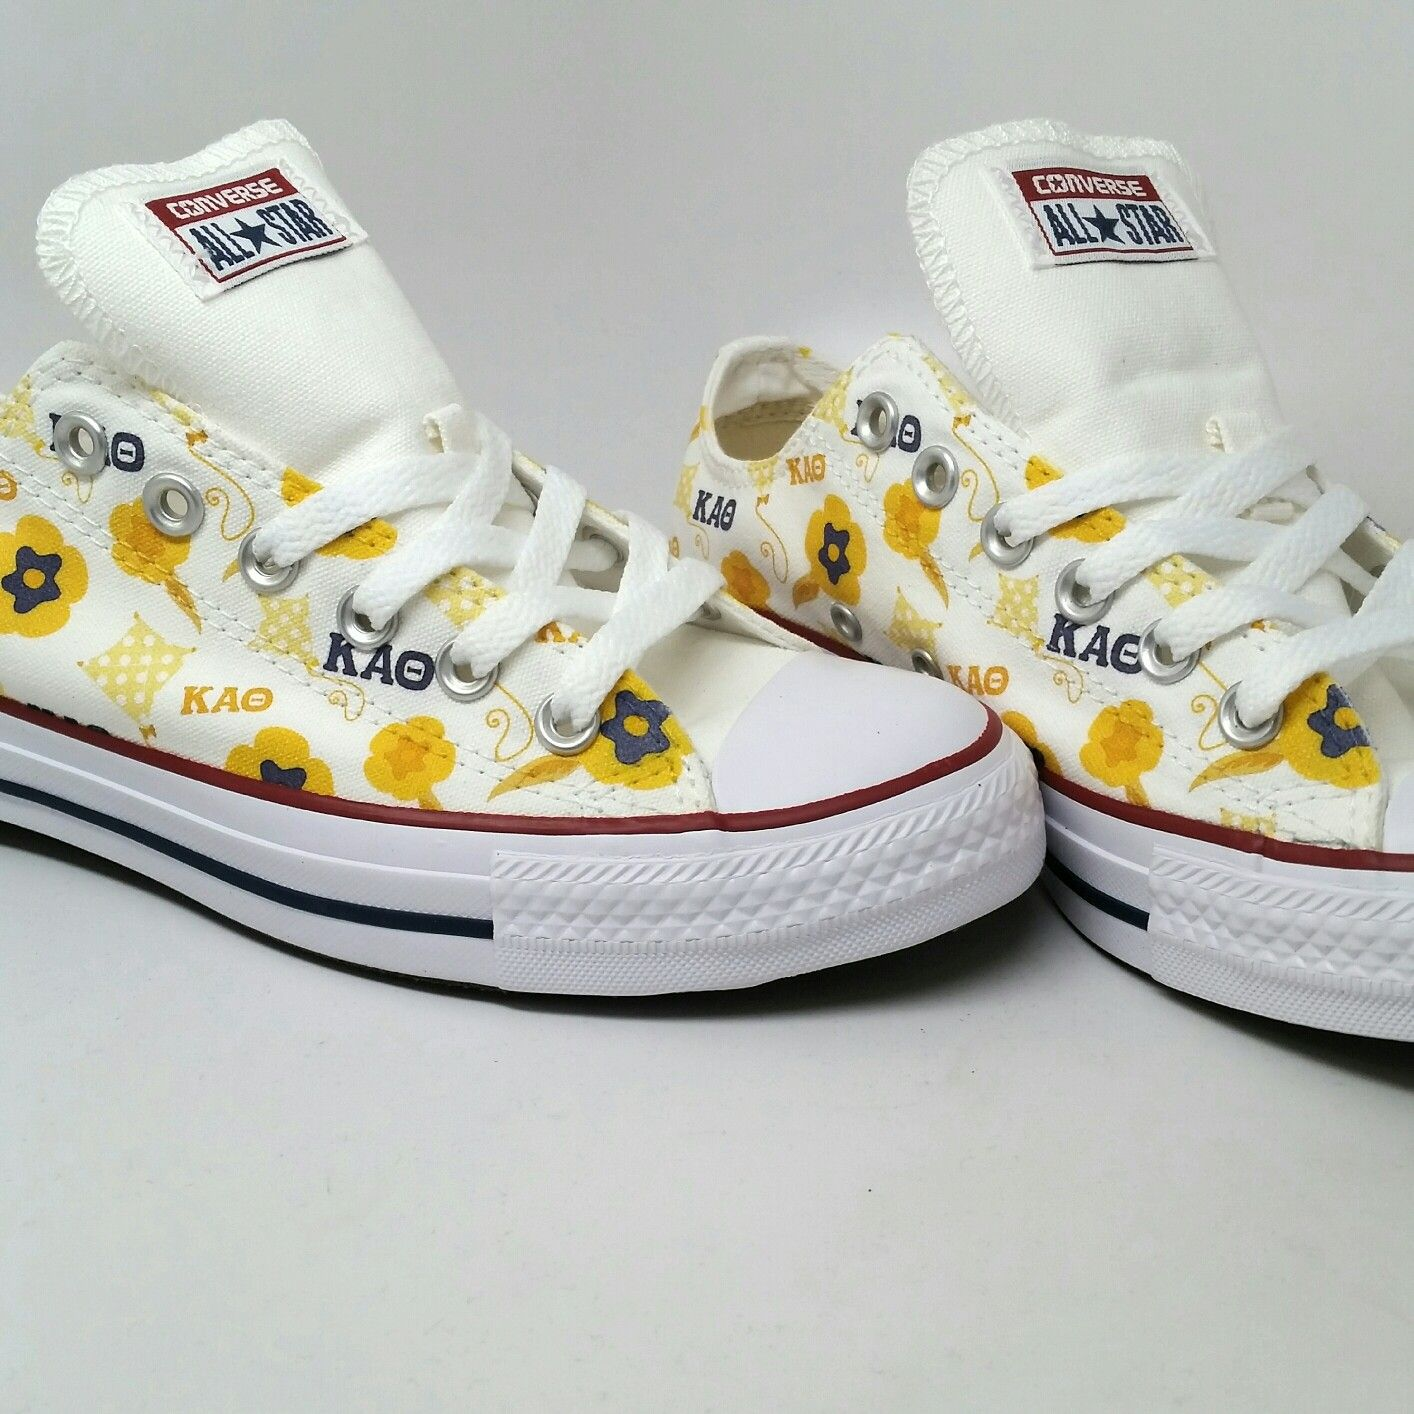 3f0889a04e57 ... spain theta custom converse chuck taylor all star low tops with kites  and pansies 229a0 7fd9c